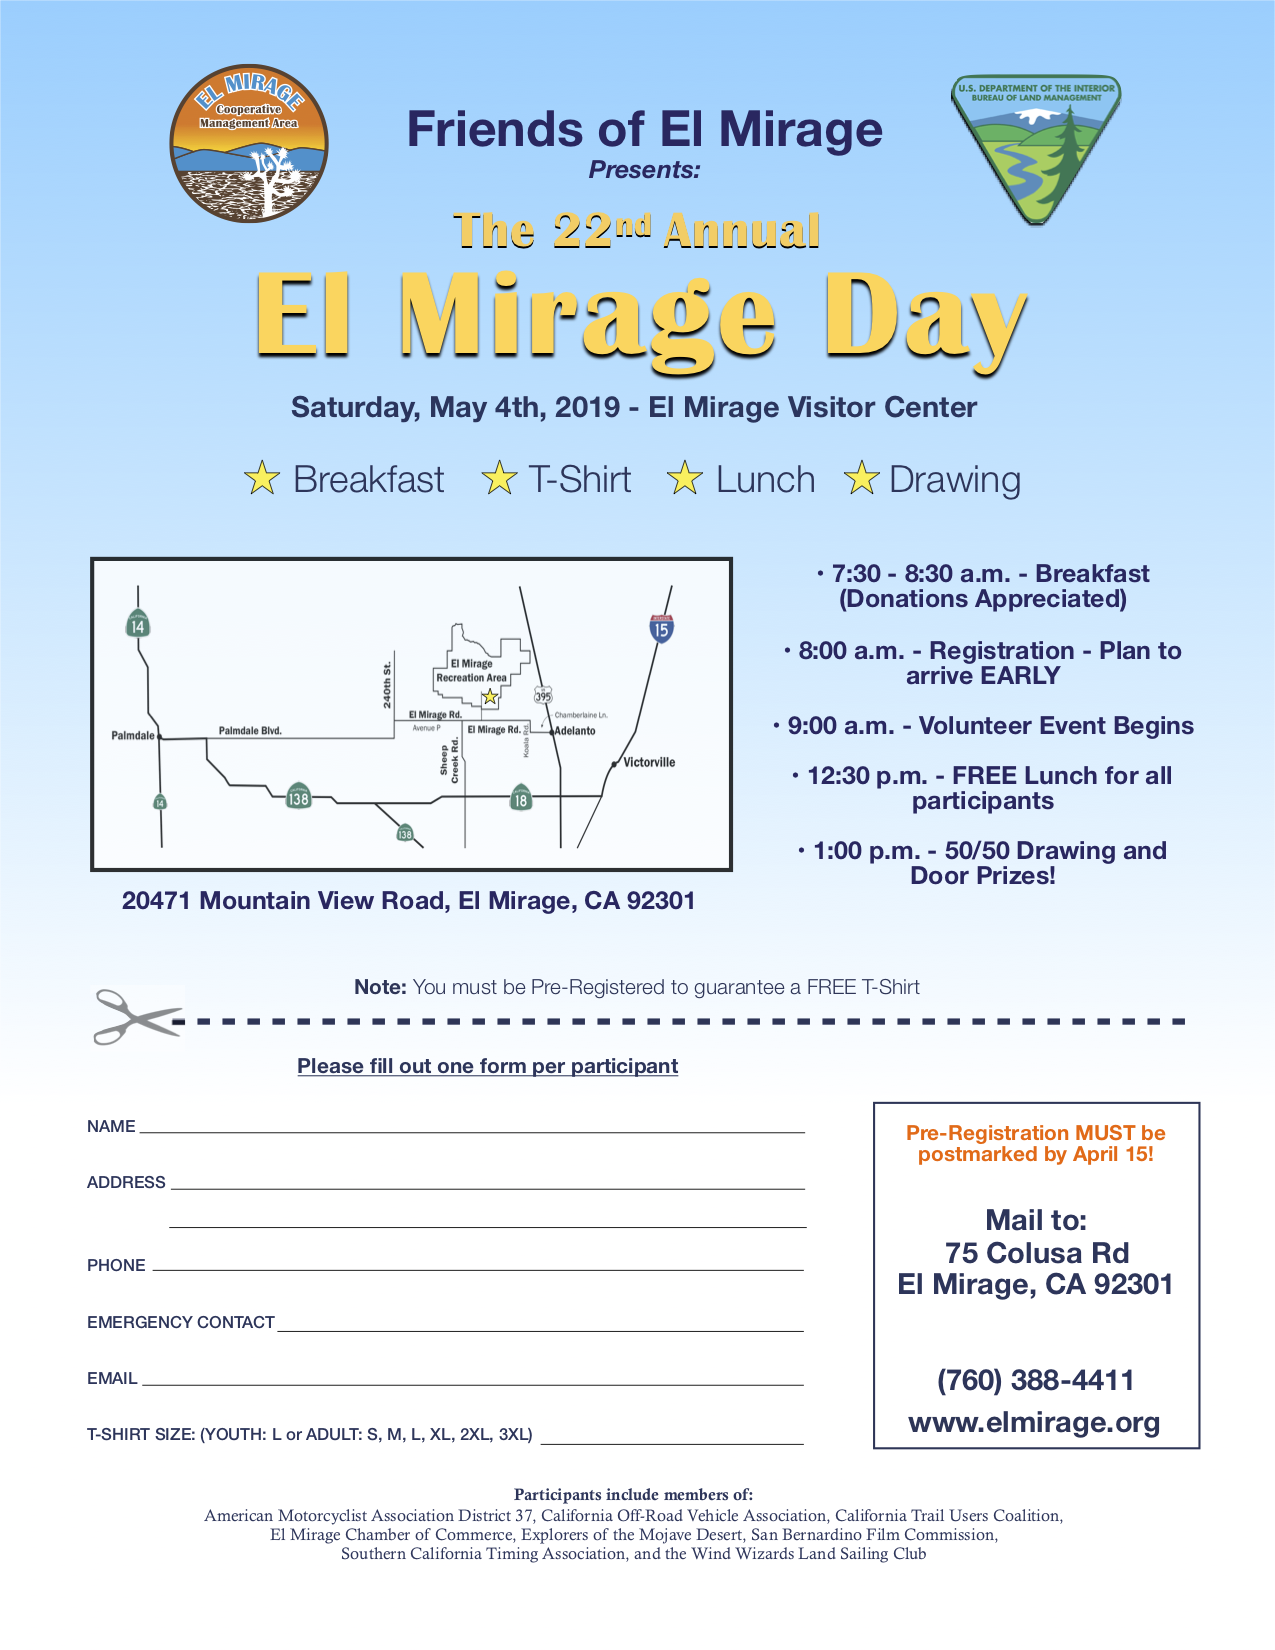 This image is the 22nd Annual El Mirage Day registration/flyer that will be on May 4th, 2019.